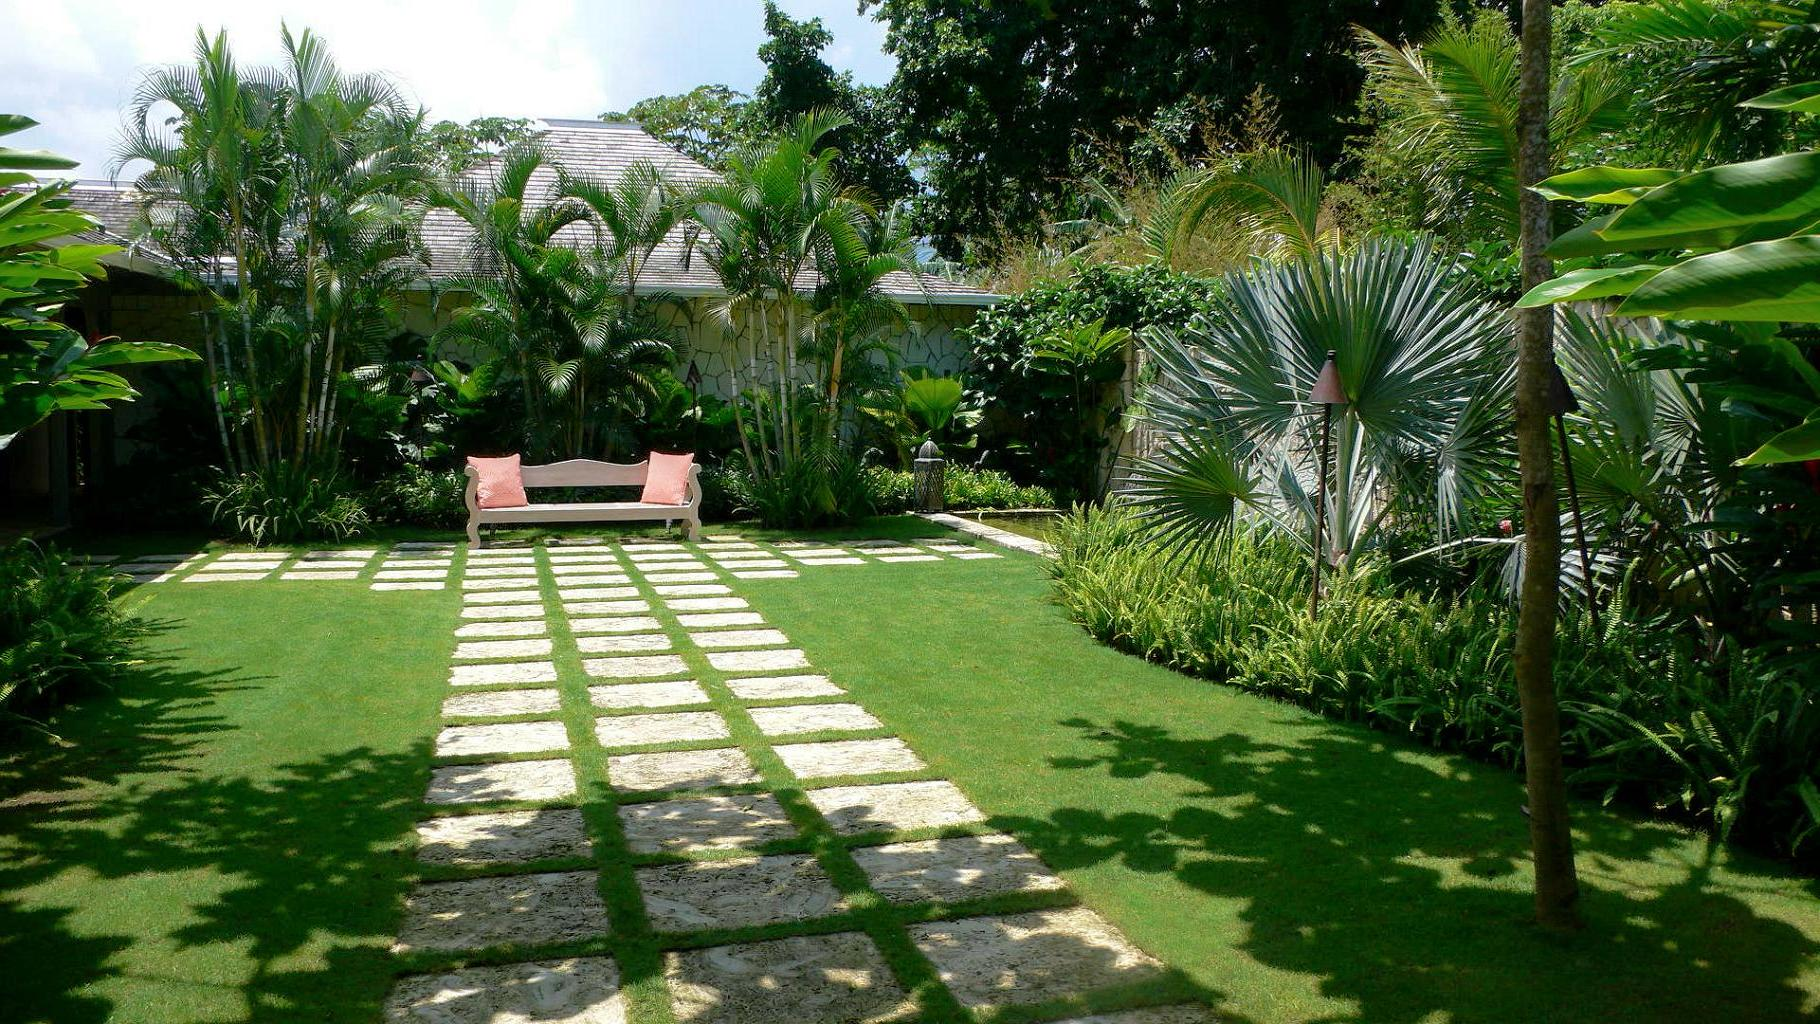 Tropical garden design landscaping in brisbane for Garden design plans uk